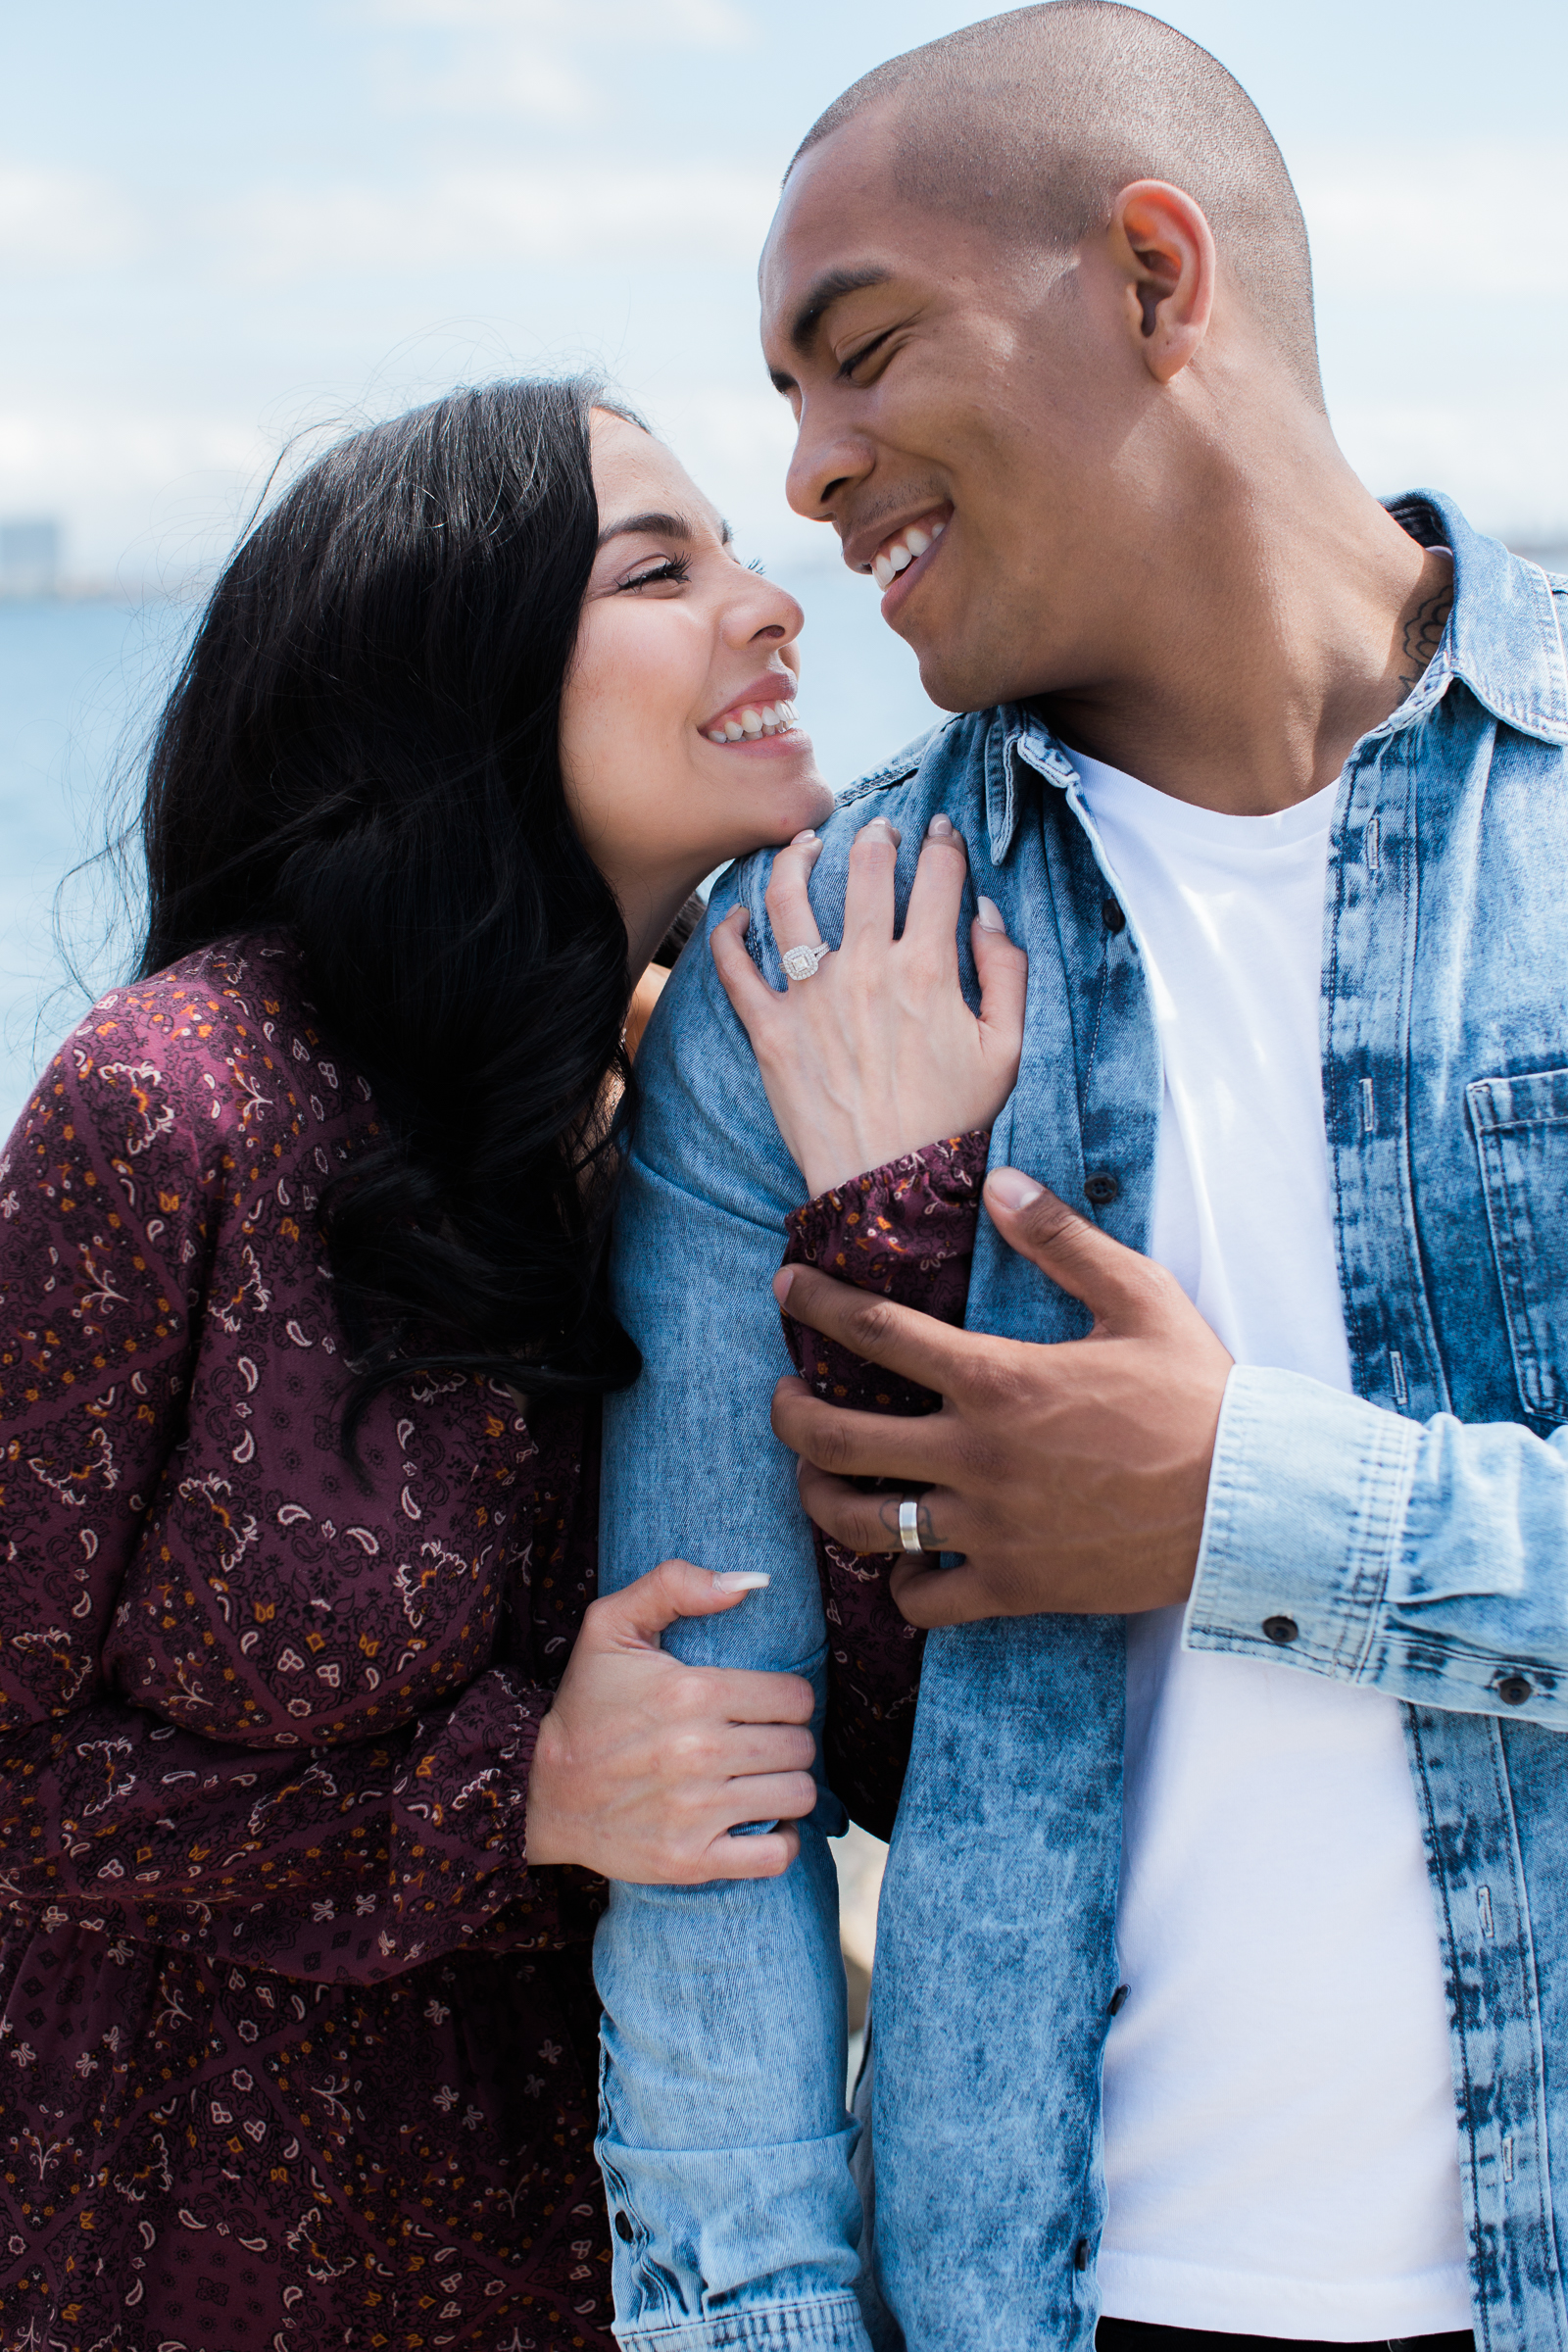 sophia-elizabeth-photography-harbor-island-san-diego-airport-downtown-bay-engaged-isaidyes (61 of 121).jpg